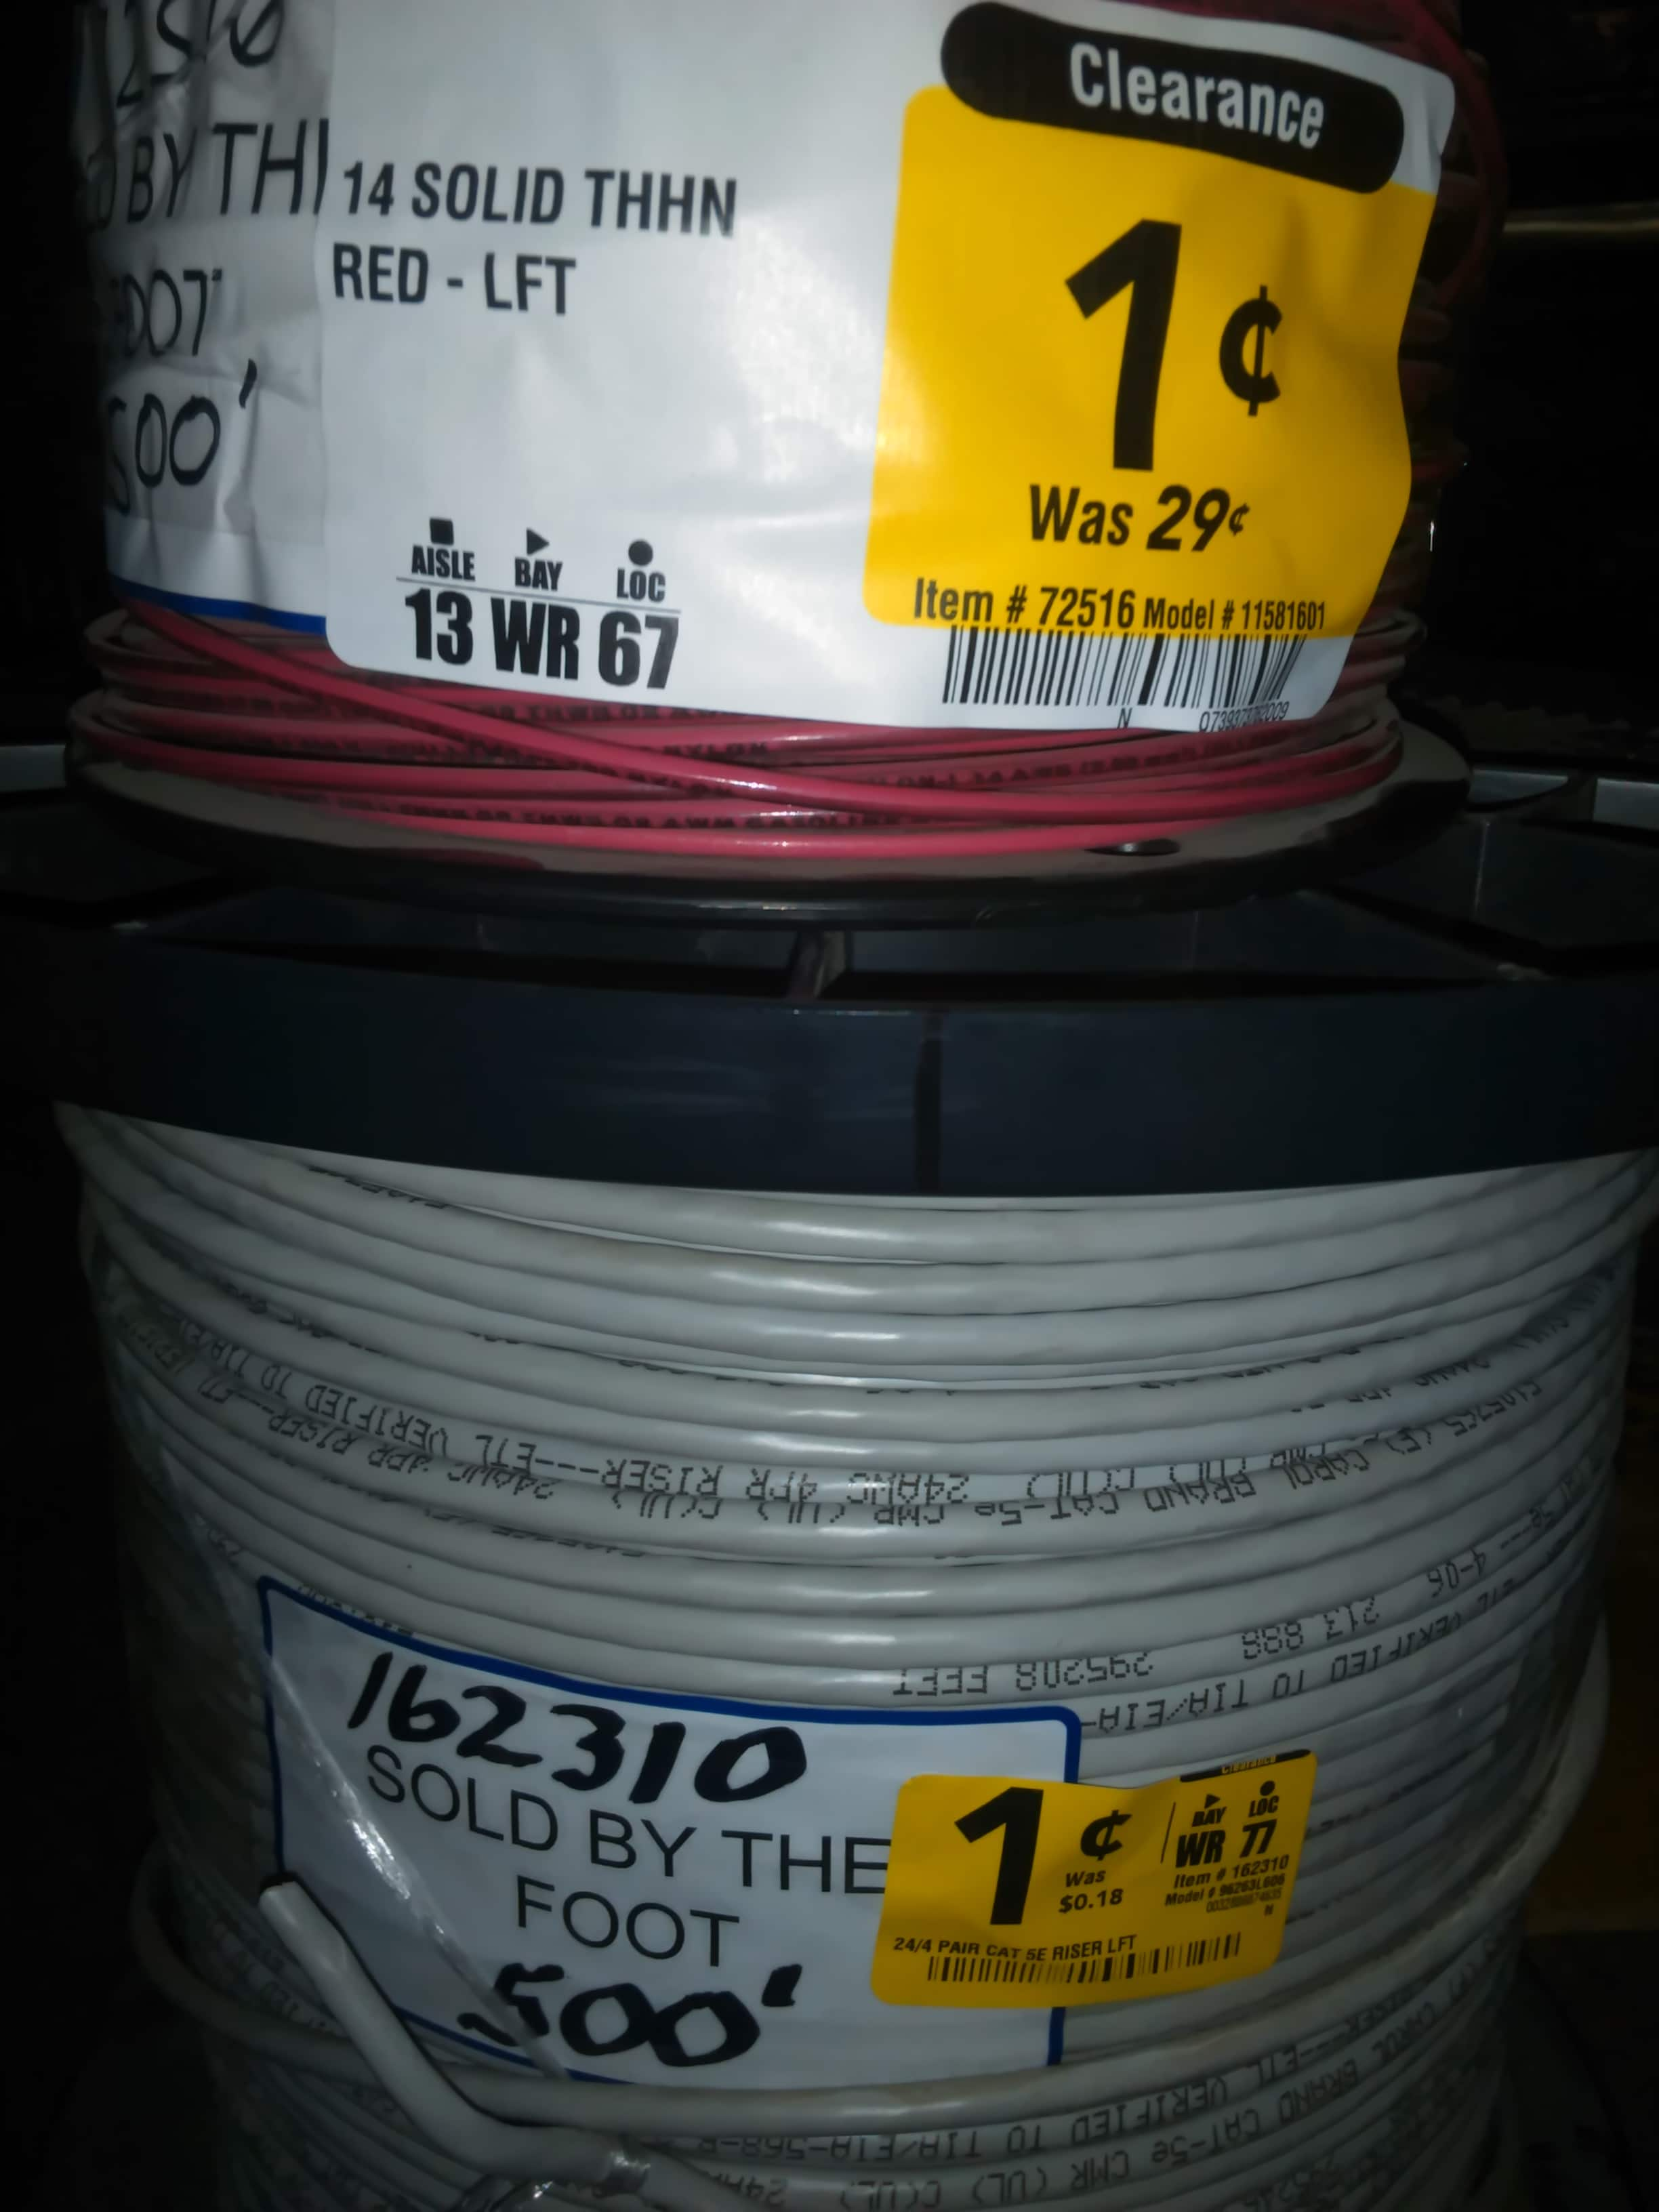 Clearance Southwire Electrical Wire and Cat 5e Starting @ $0.01/ft Lowes B&M & Online YMMV - Possible Scrap Metal MM